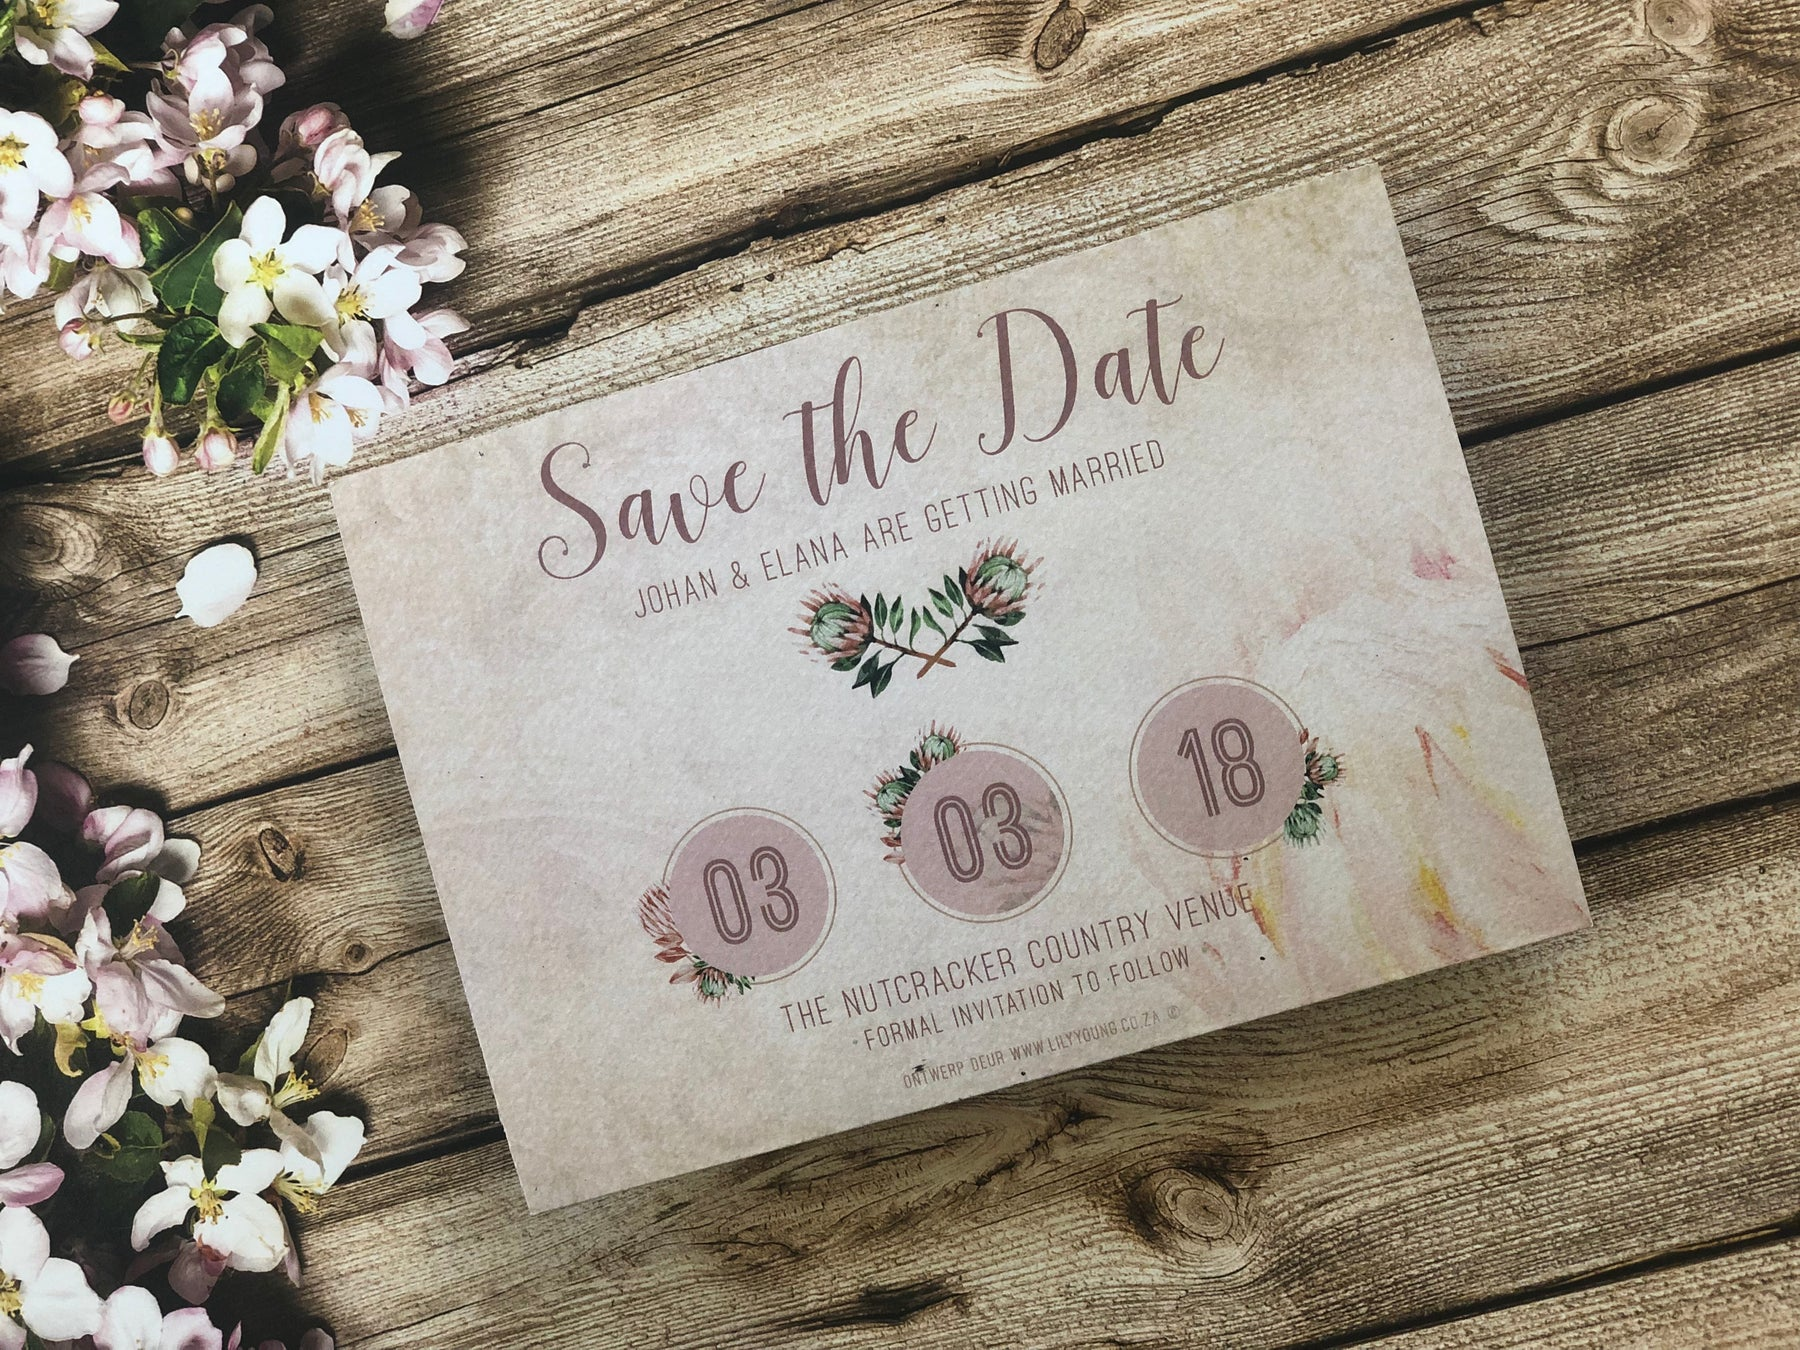 All Save the dates